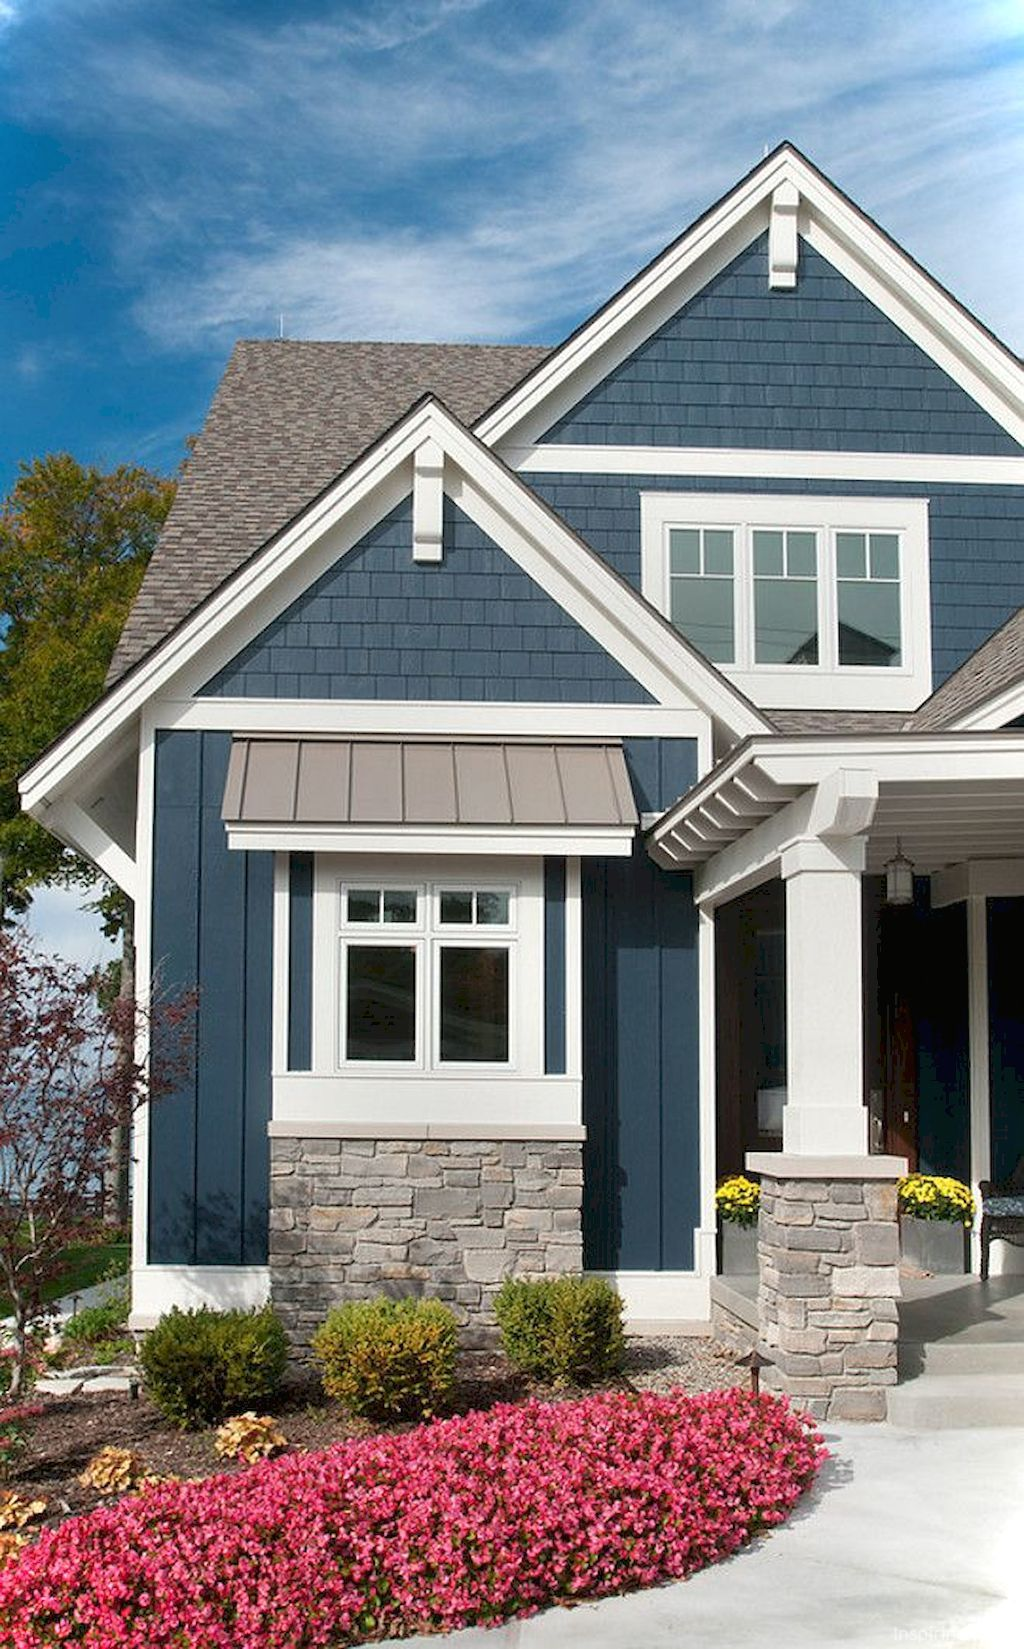 Awesome Cottage Exterior Colors Schemes Ideas035